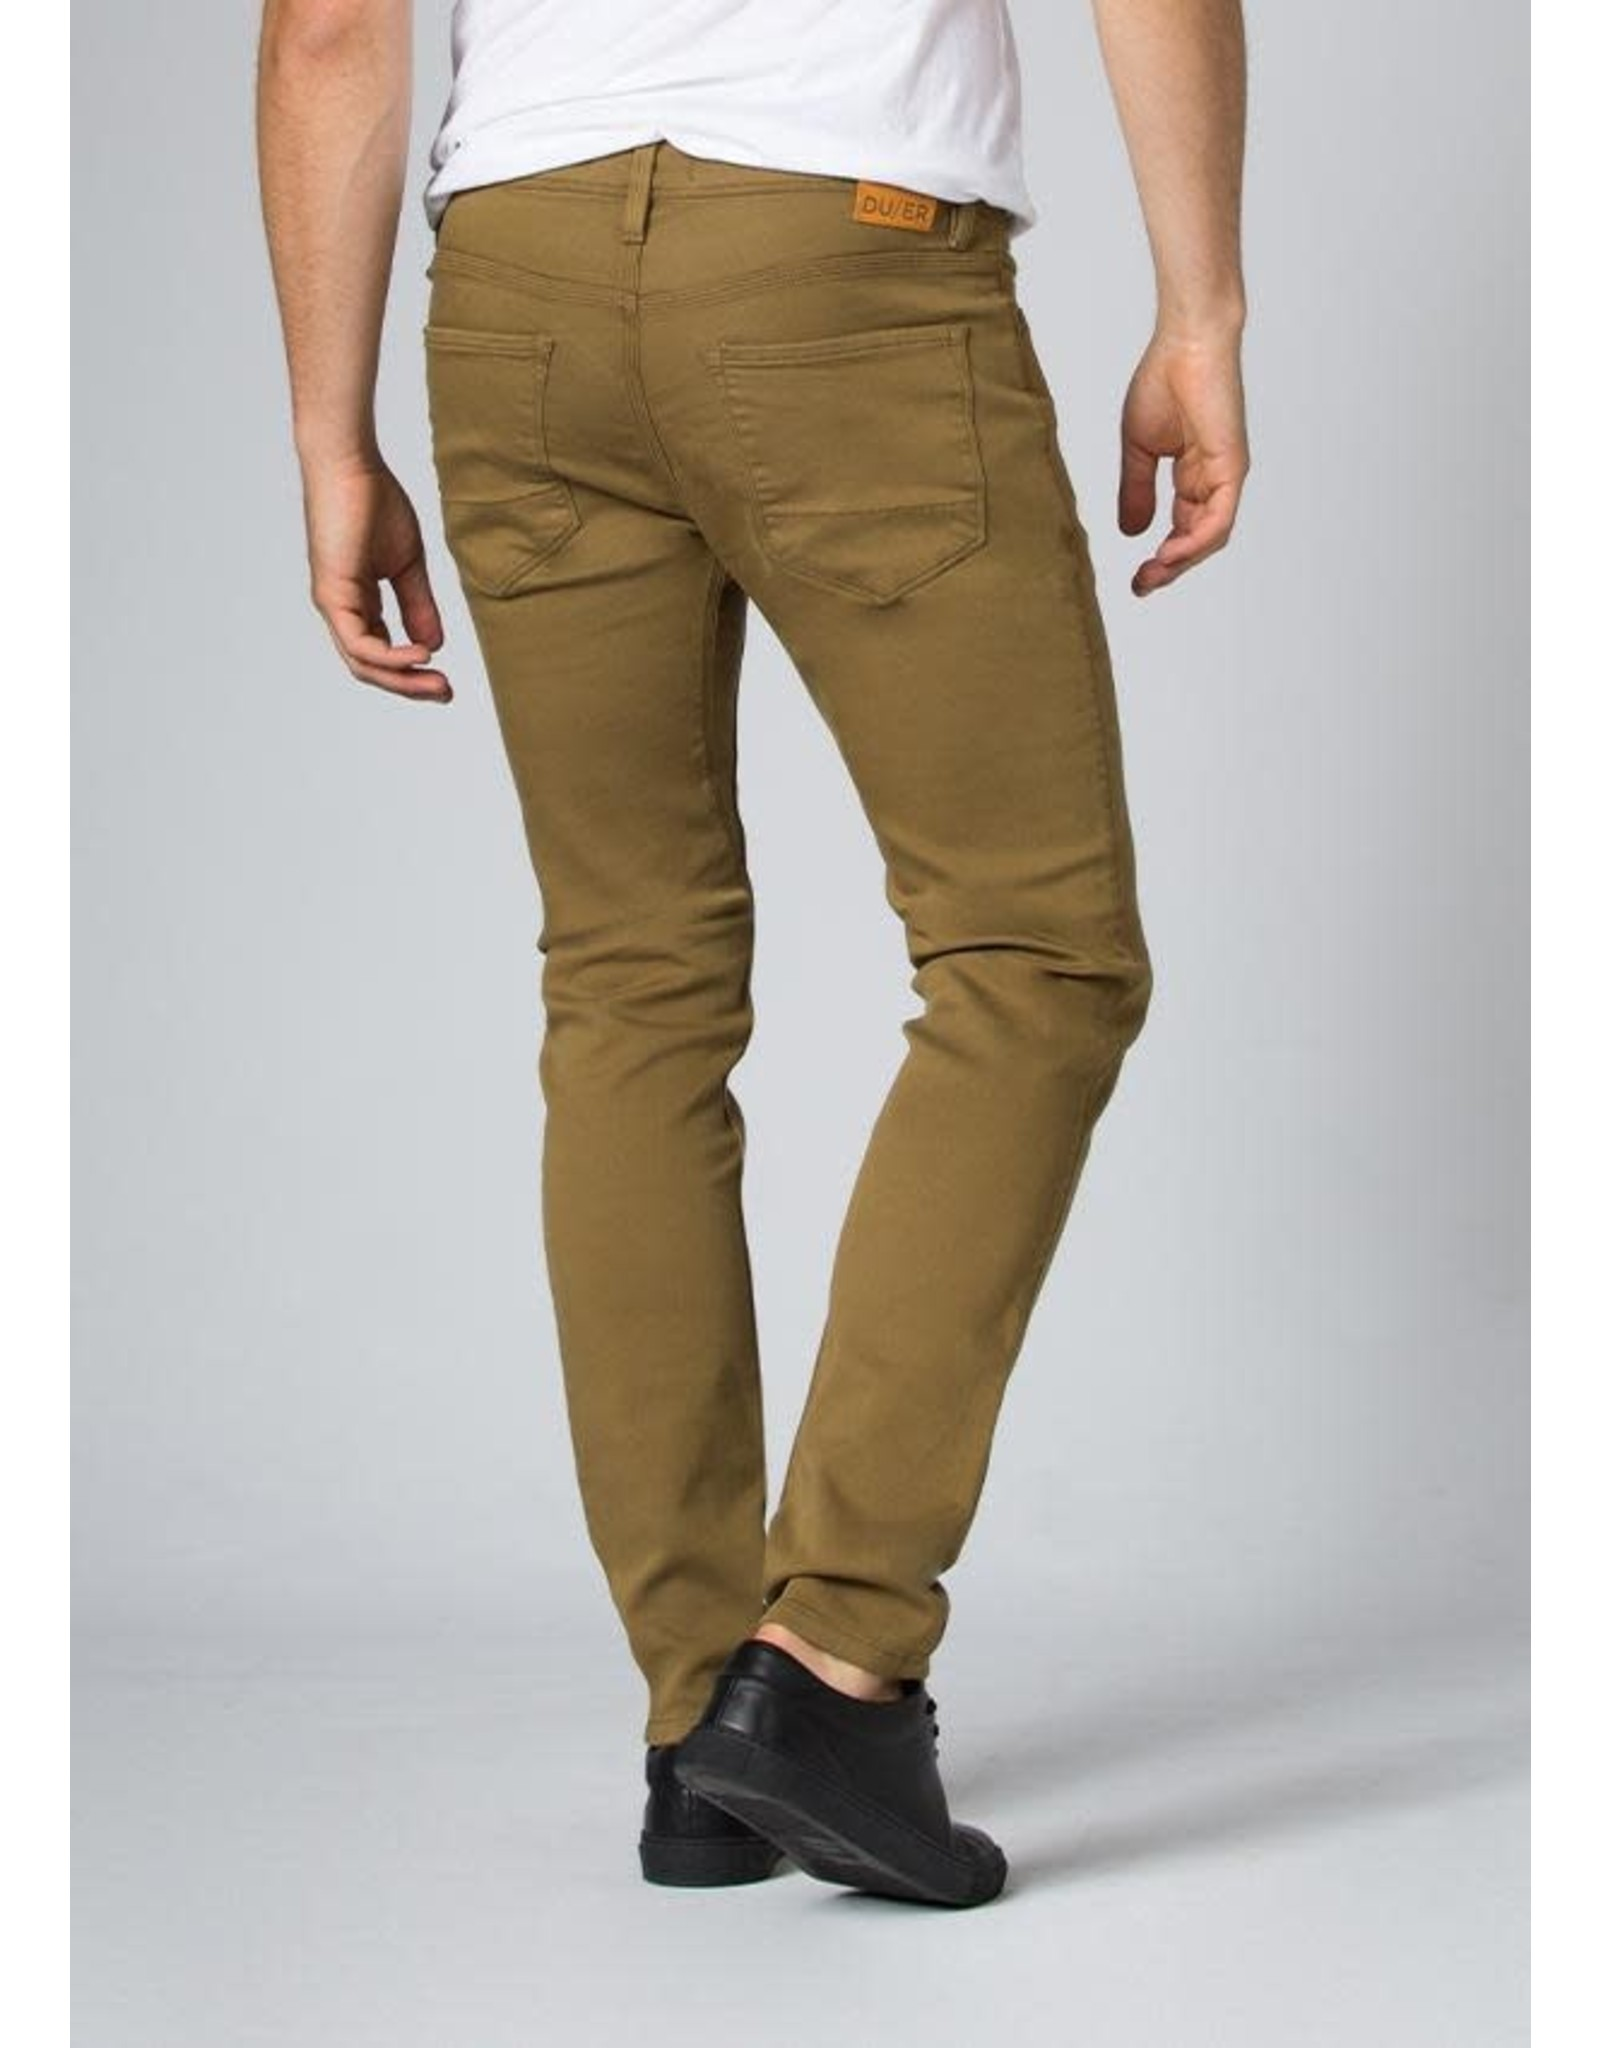 DU/ER Du/er - Pantalon homme no sweat slim tobacco